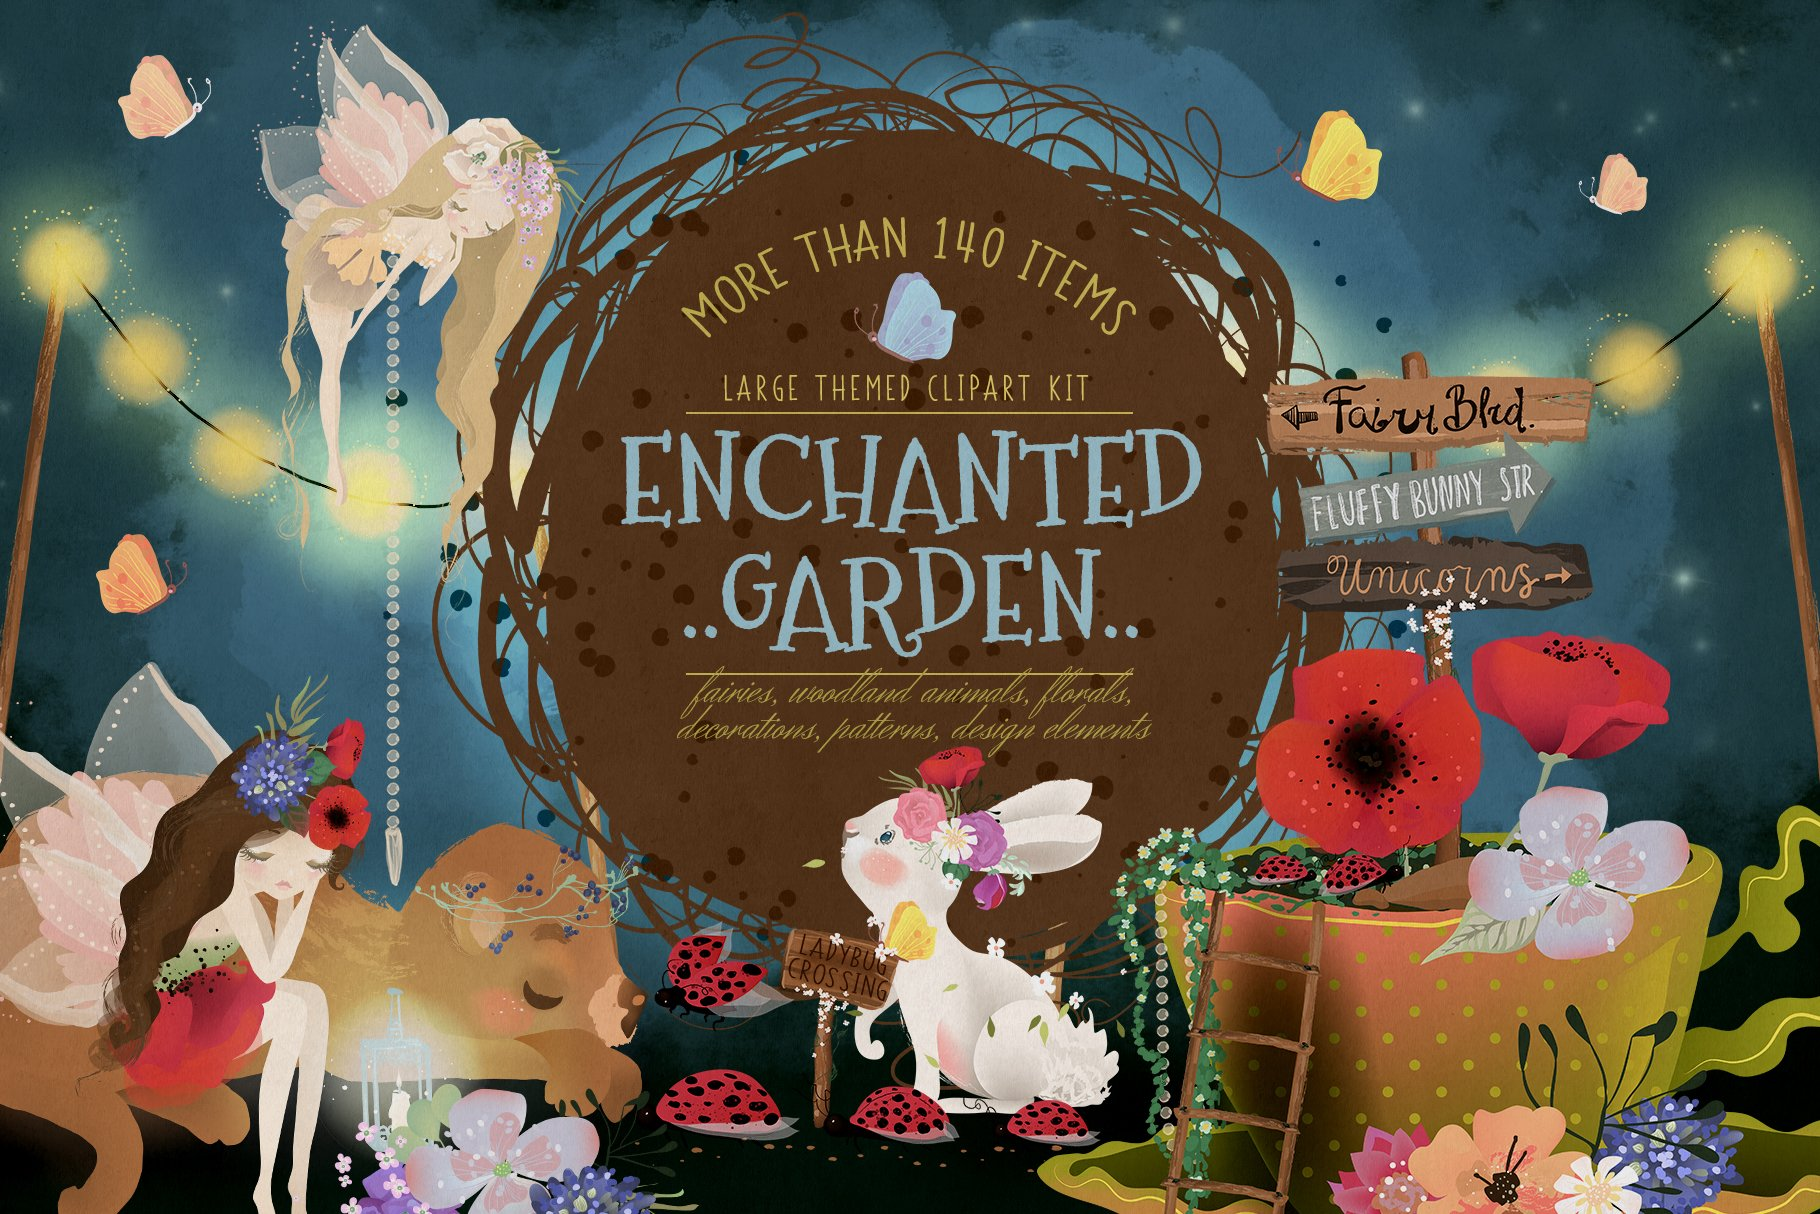 Enchanted Garden Illustrations Creative Market